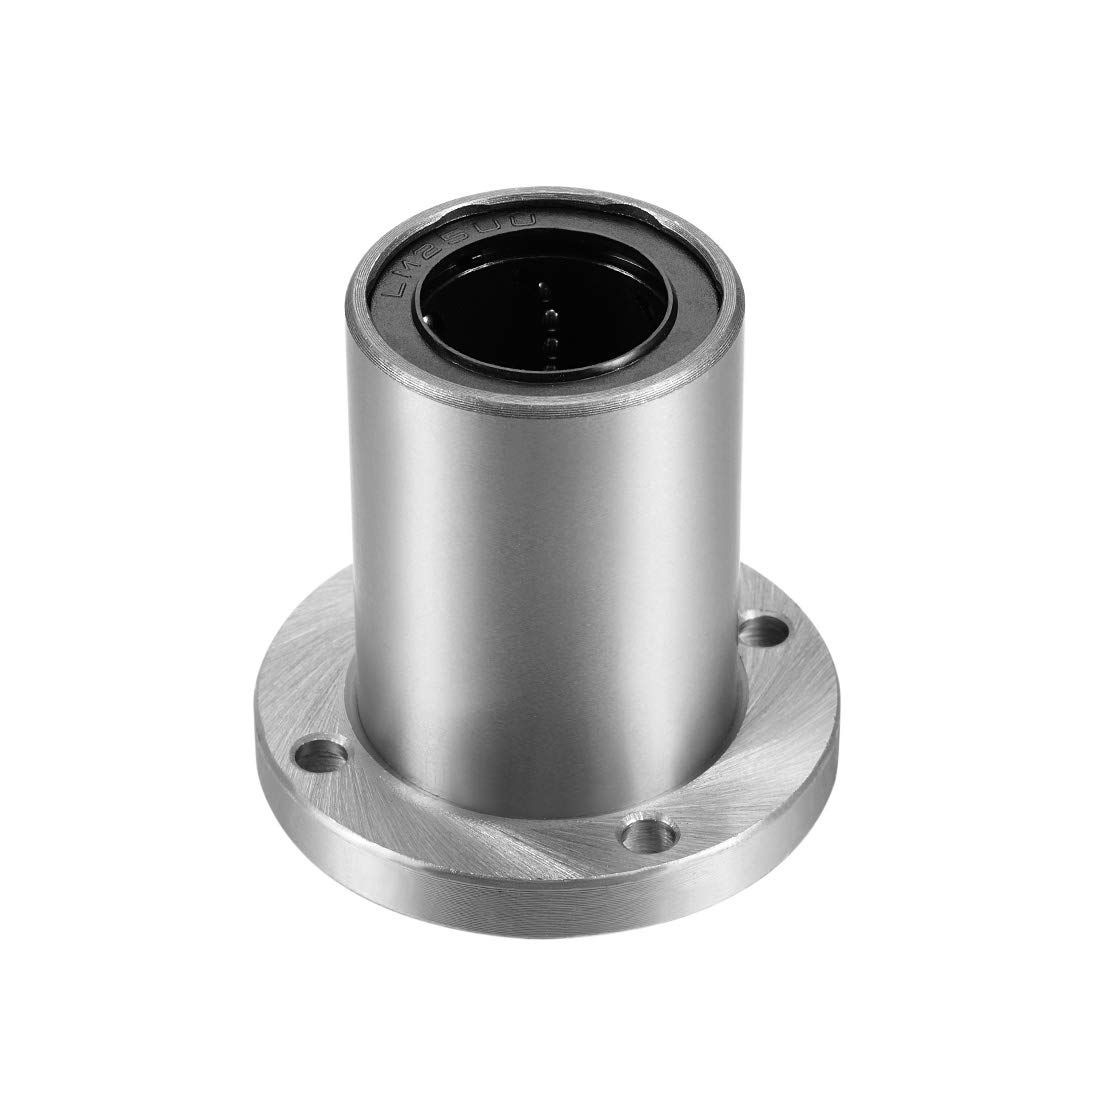 uxcell LM25UU Round Flange Linear Ball Bearings 59mm Length 1Pcs 25mm Bore Dia 40mm OD